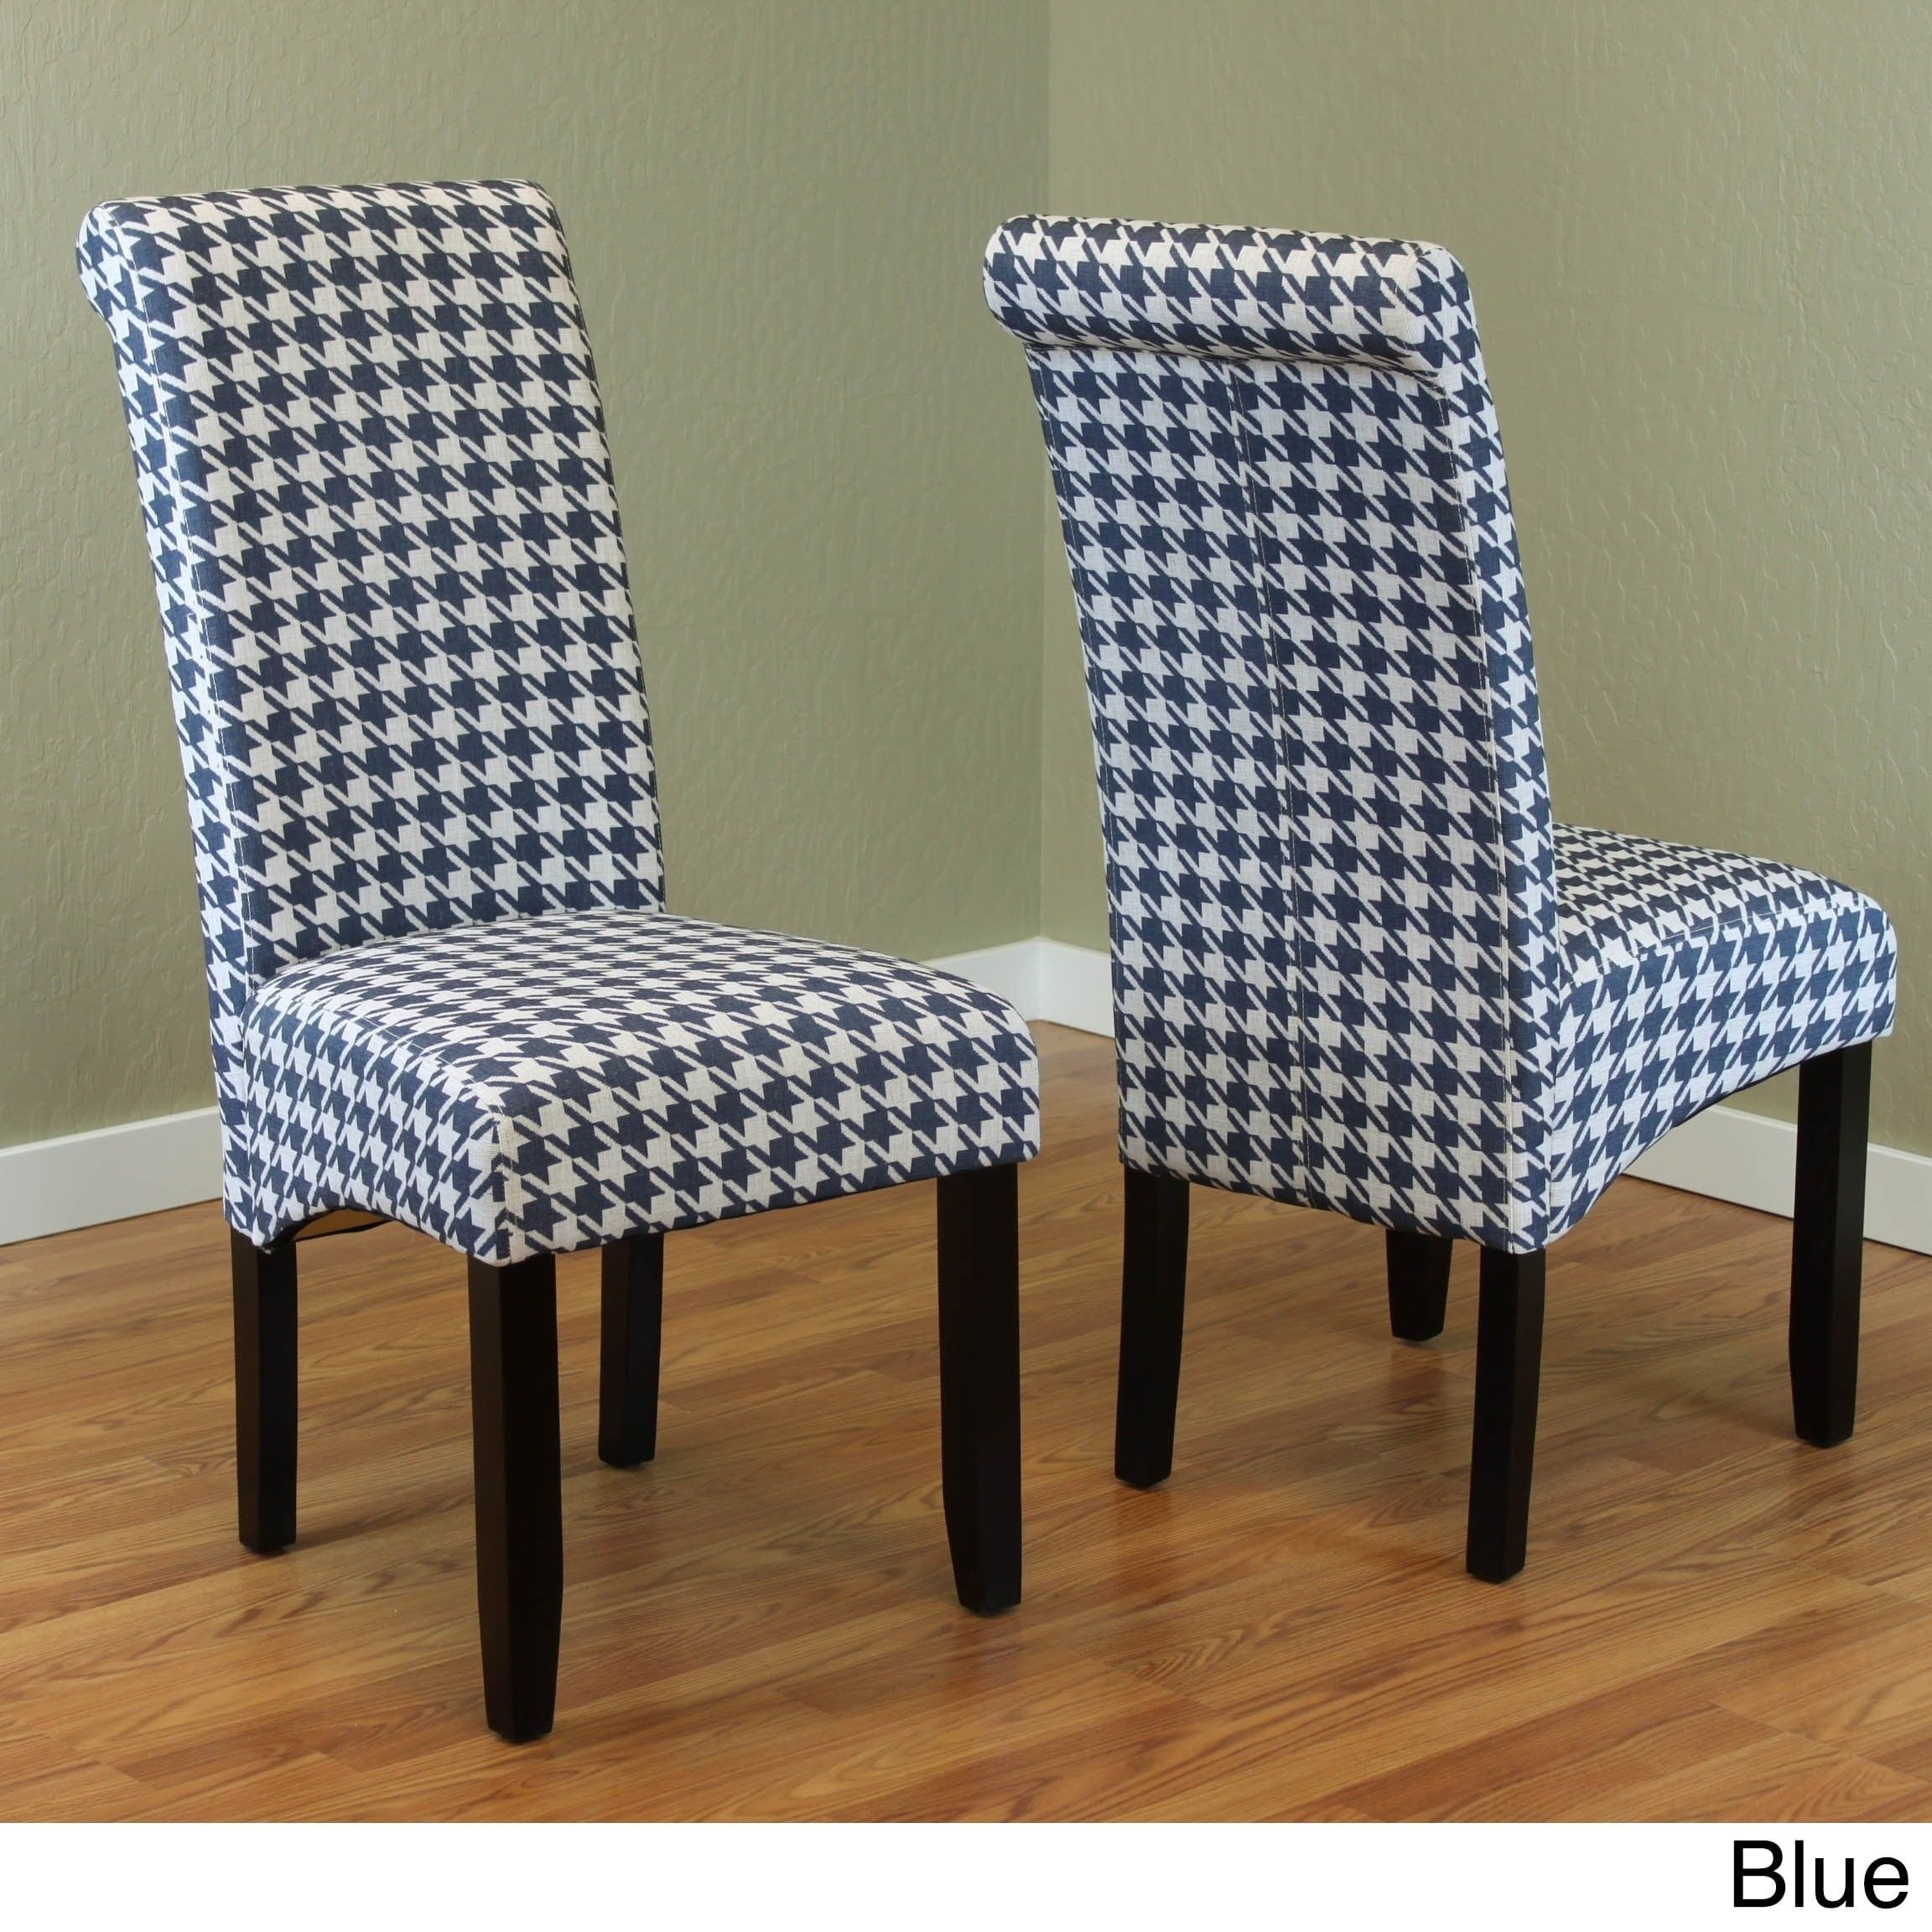 Remarkable Milan Wood And Linen Houndstooth Dining Chairs Set Of 2 Creativecarmelina Interior Chair Design Creativecarmelinacom